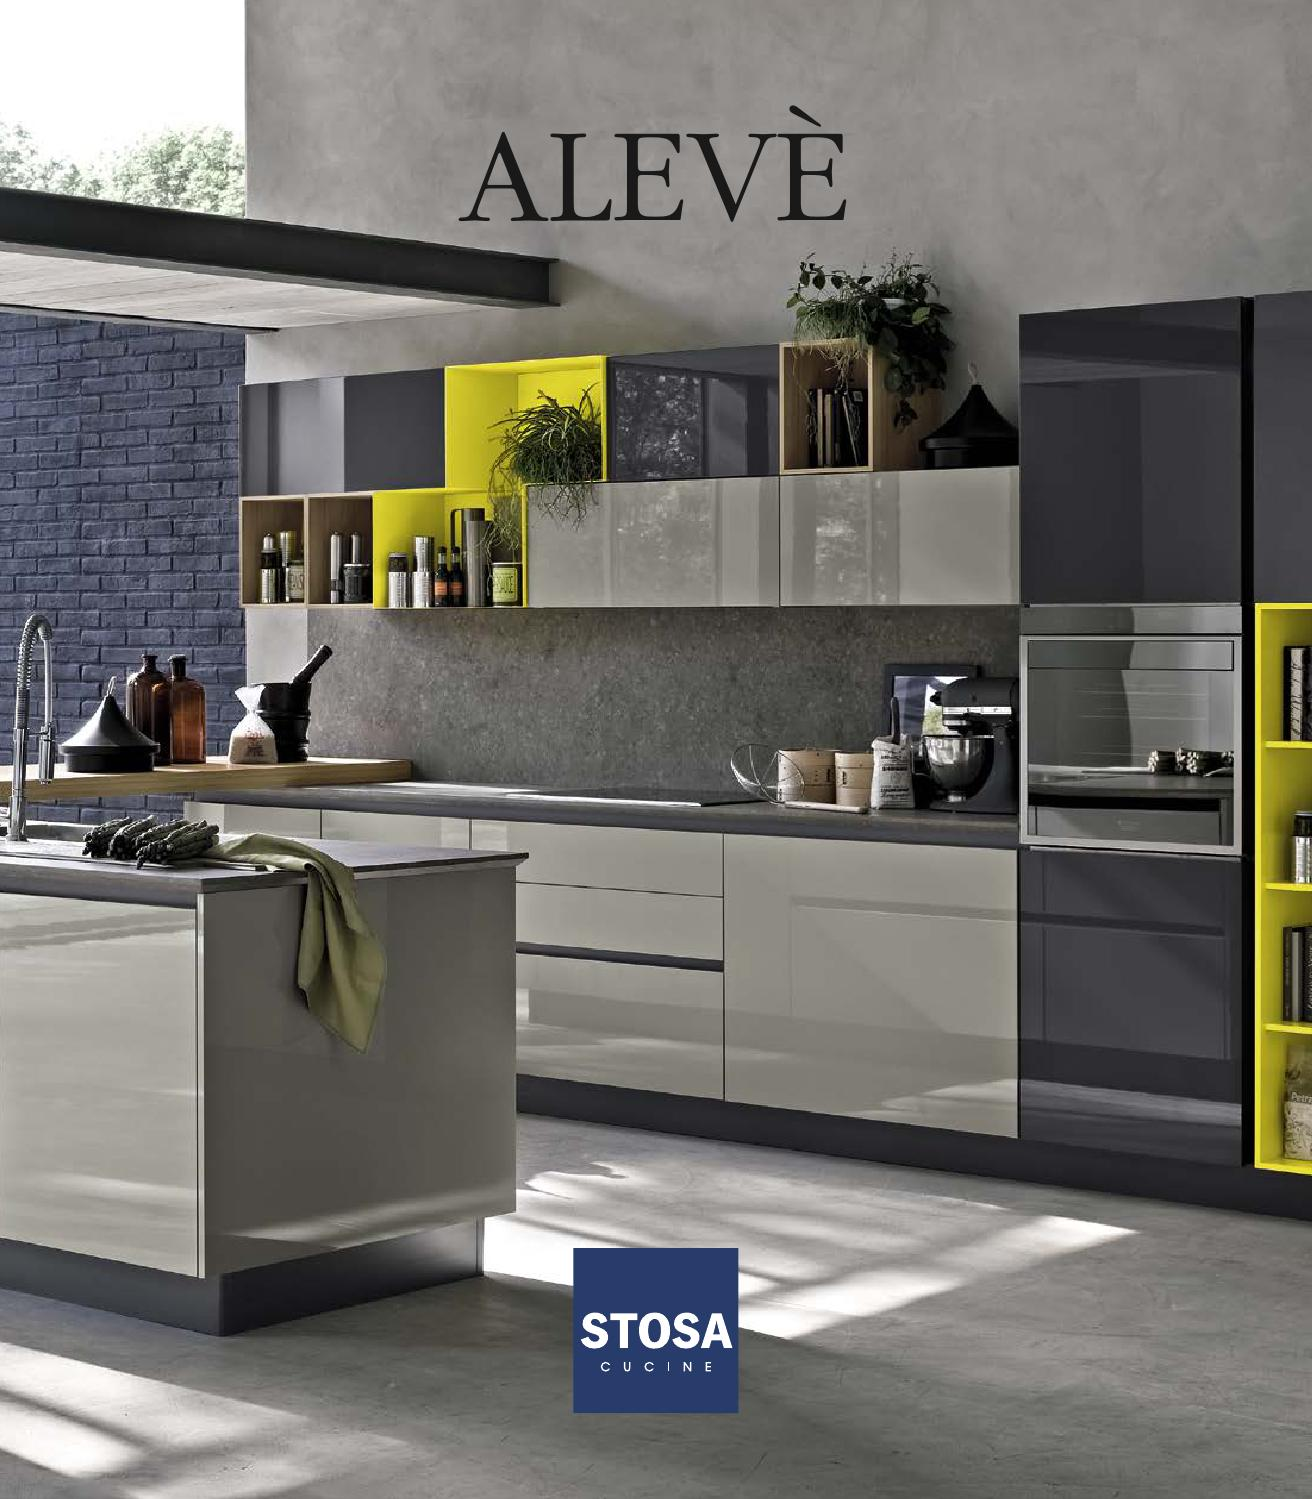 Catalogo cucine stosa moderne alev by stosa cucine issuu for Cucine catalogo